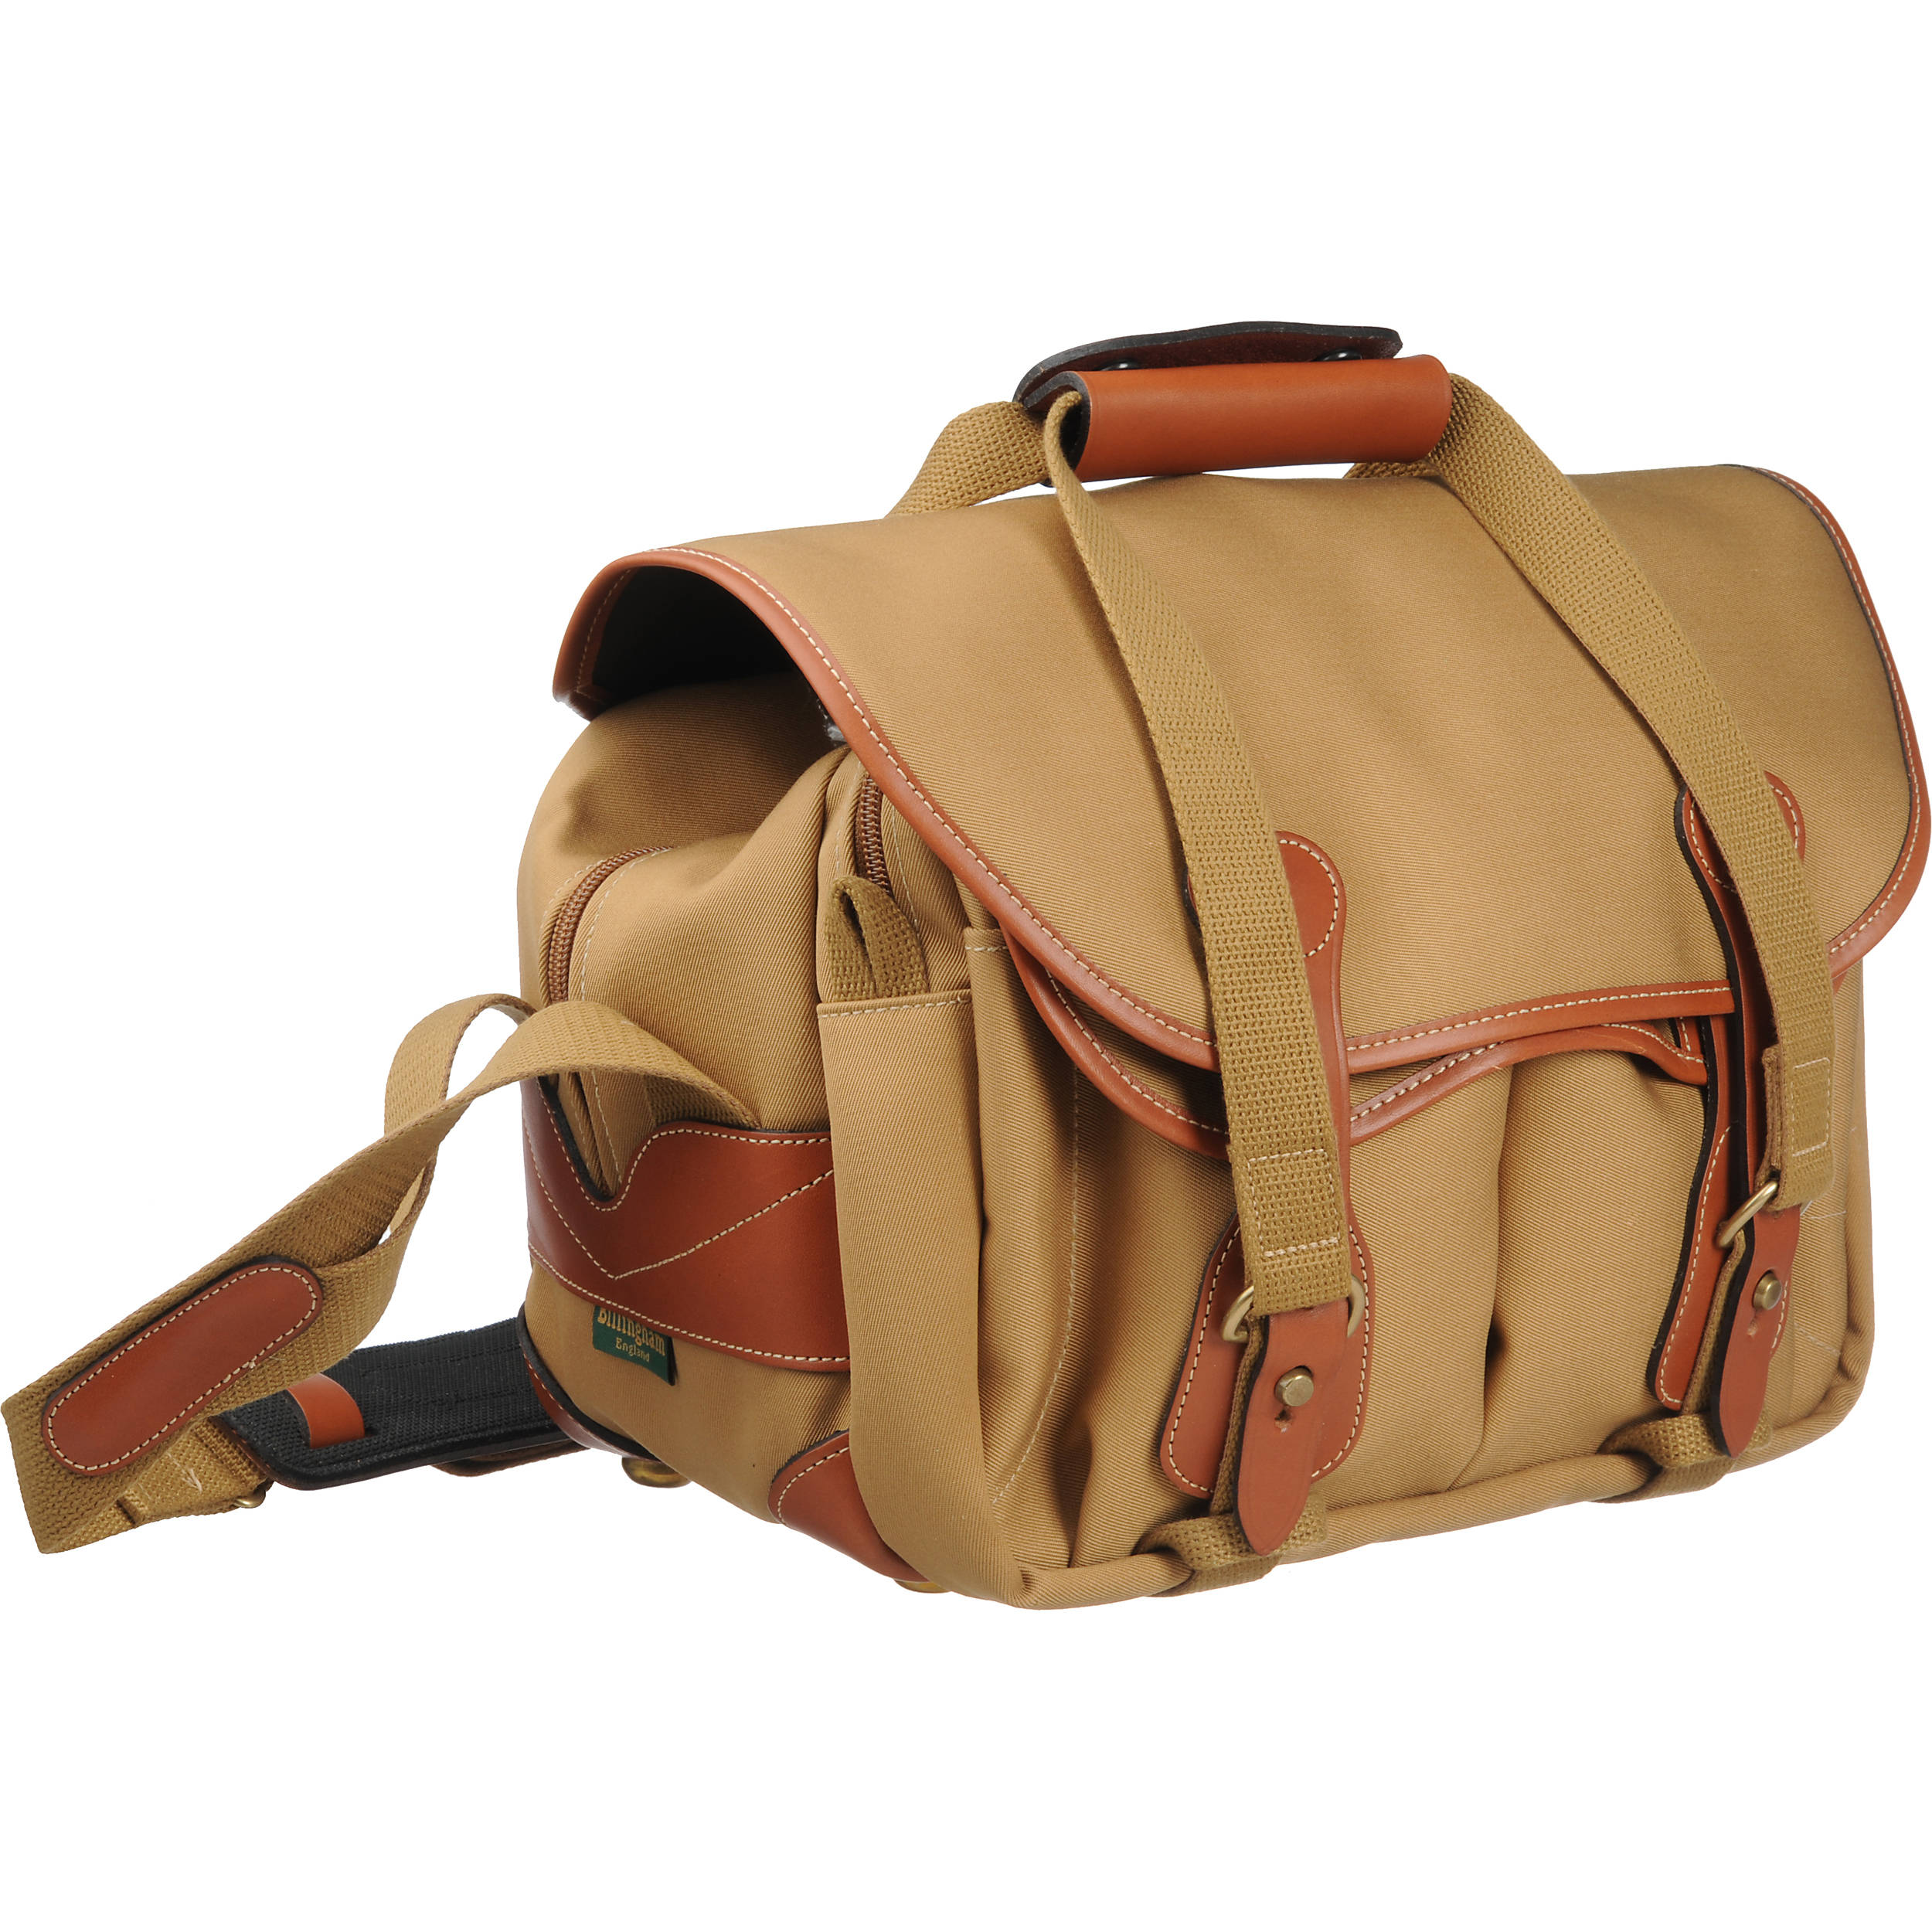 Billingham 225 Shoulder Bag Khaki With Tan Leather Trim